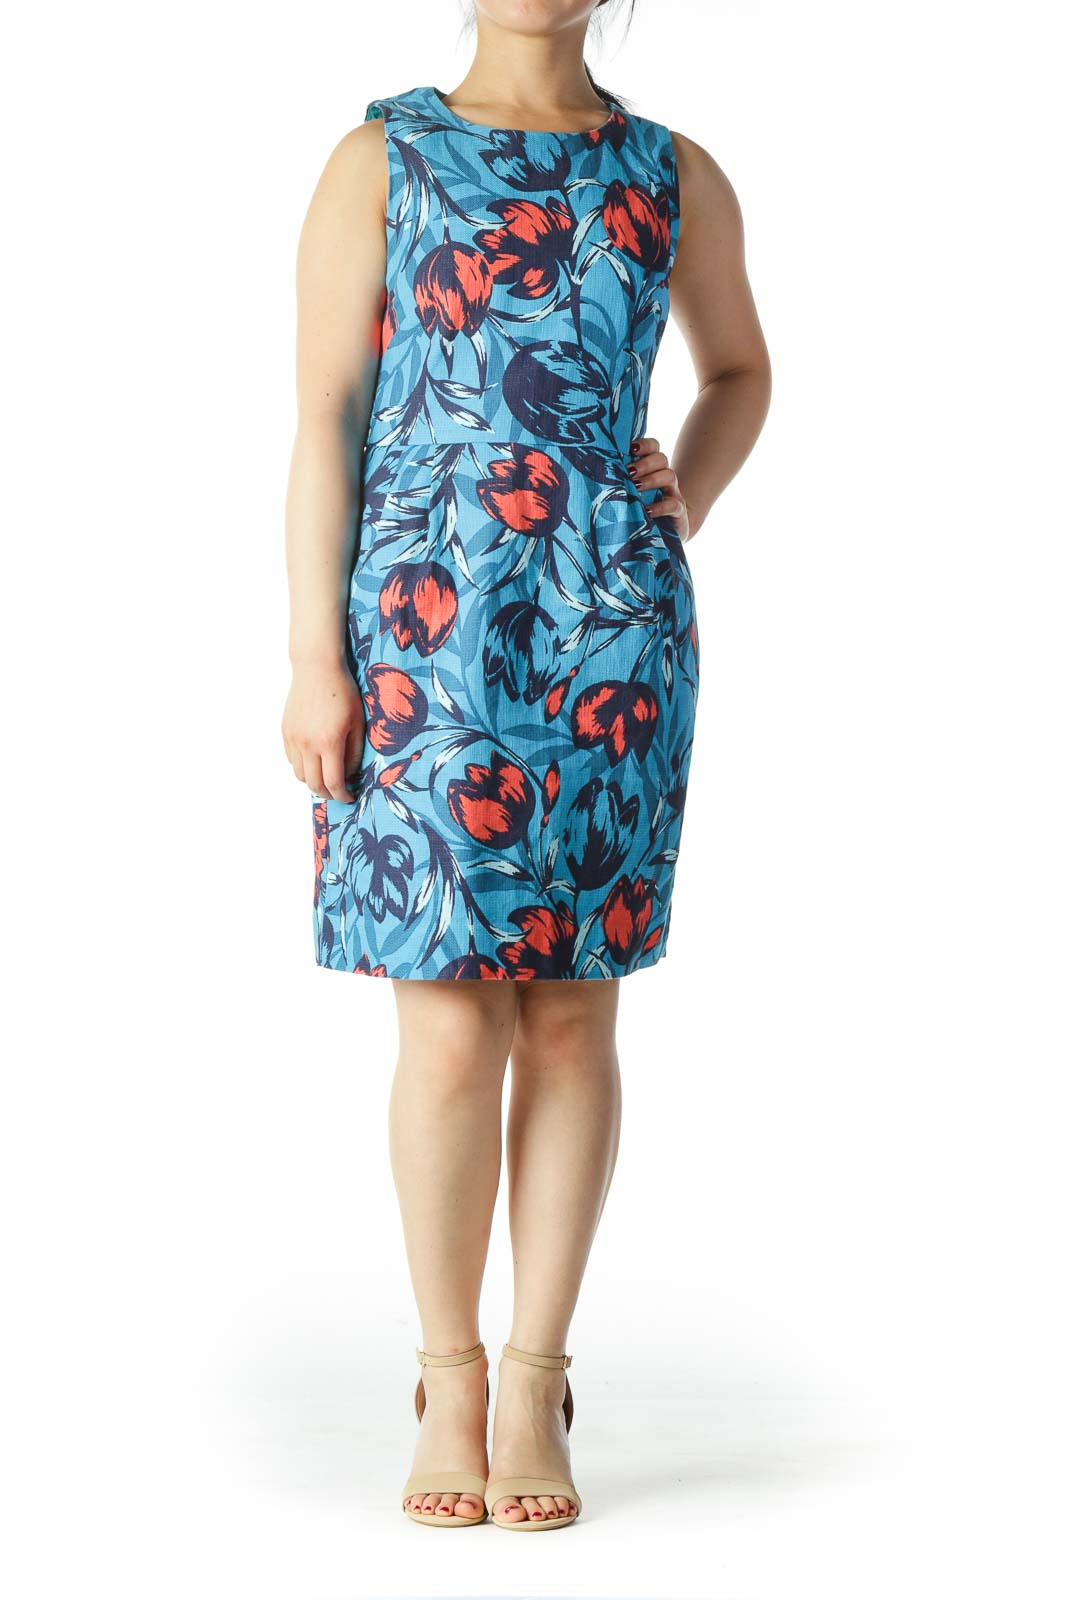 Blue and Orange Floral Dress